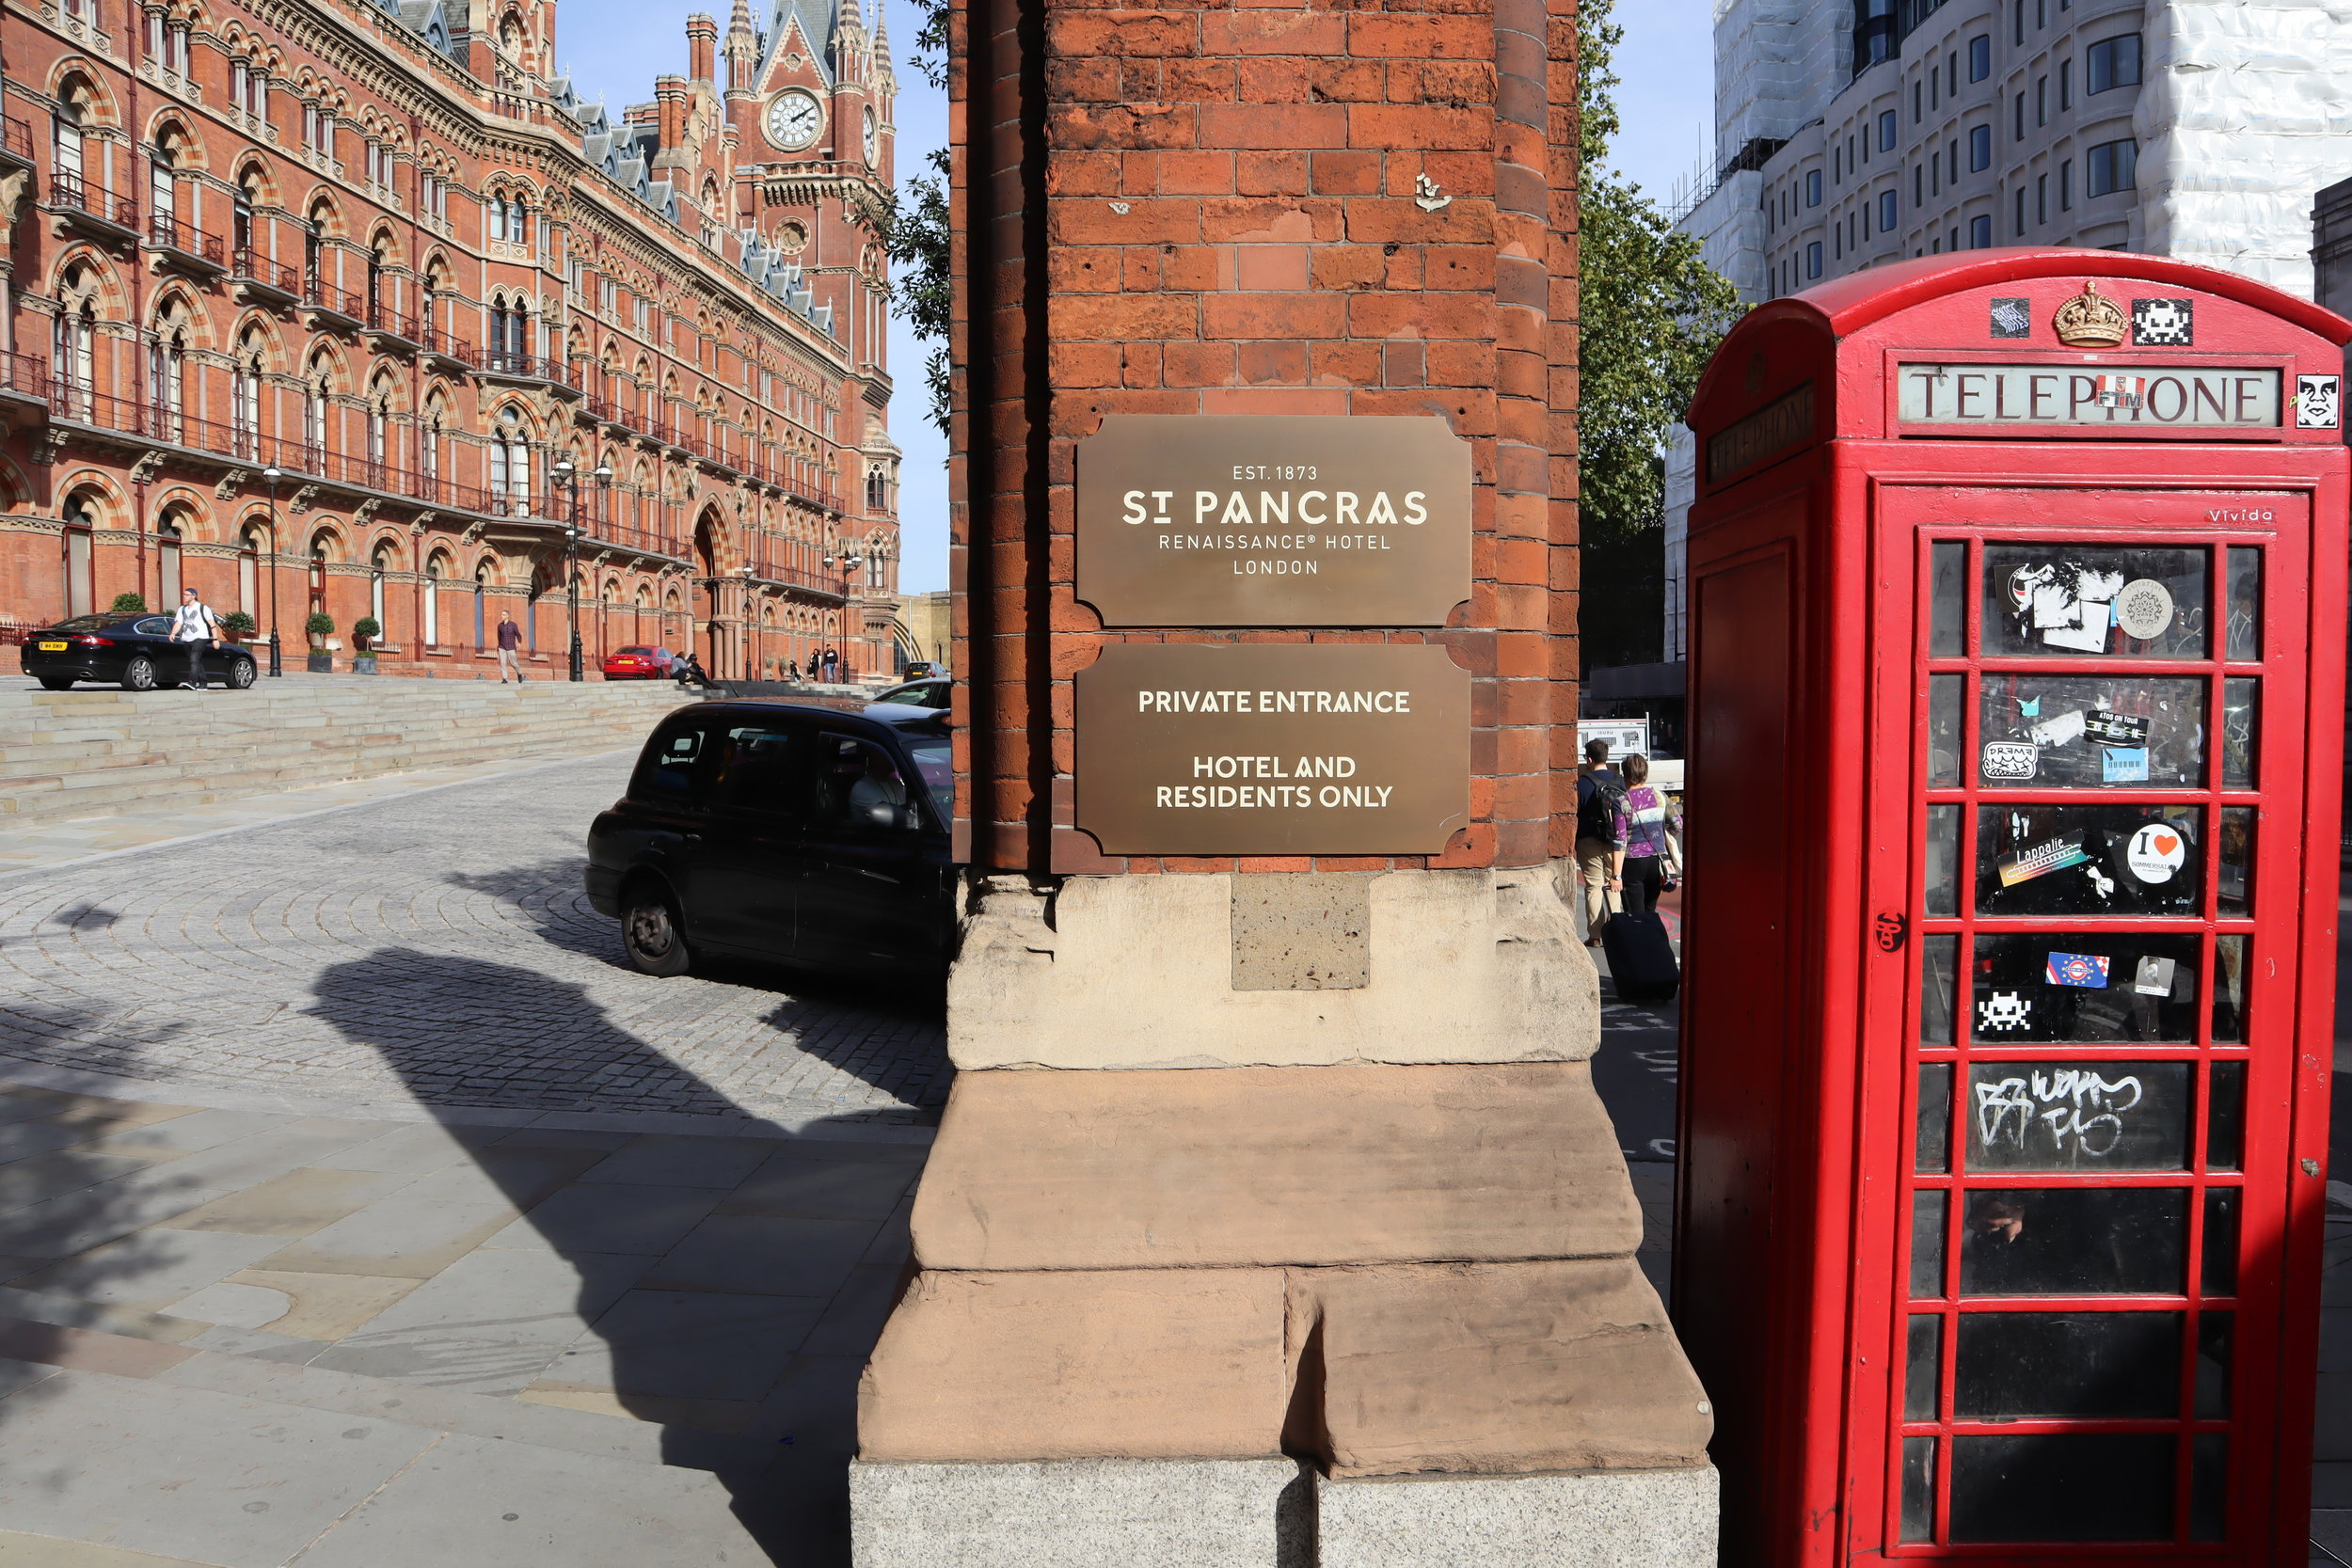 St. Pancras Renaissance Hotel London – Entrance sign